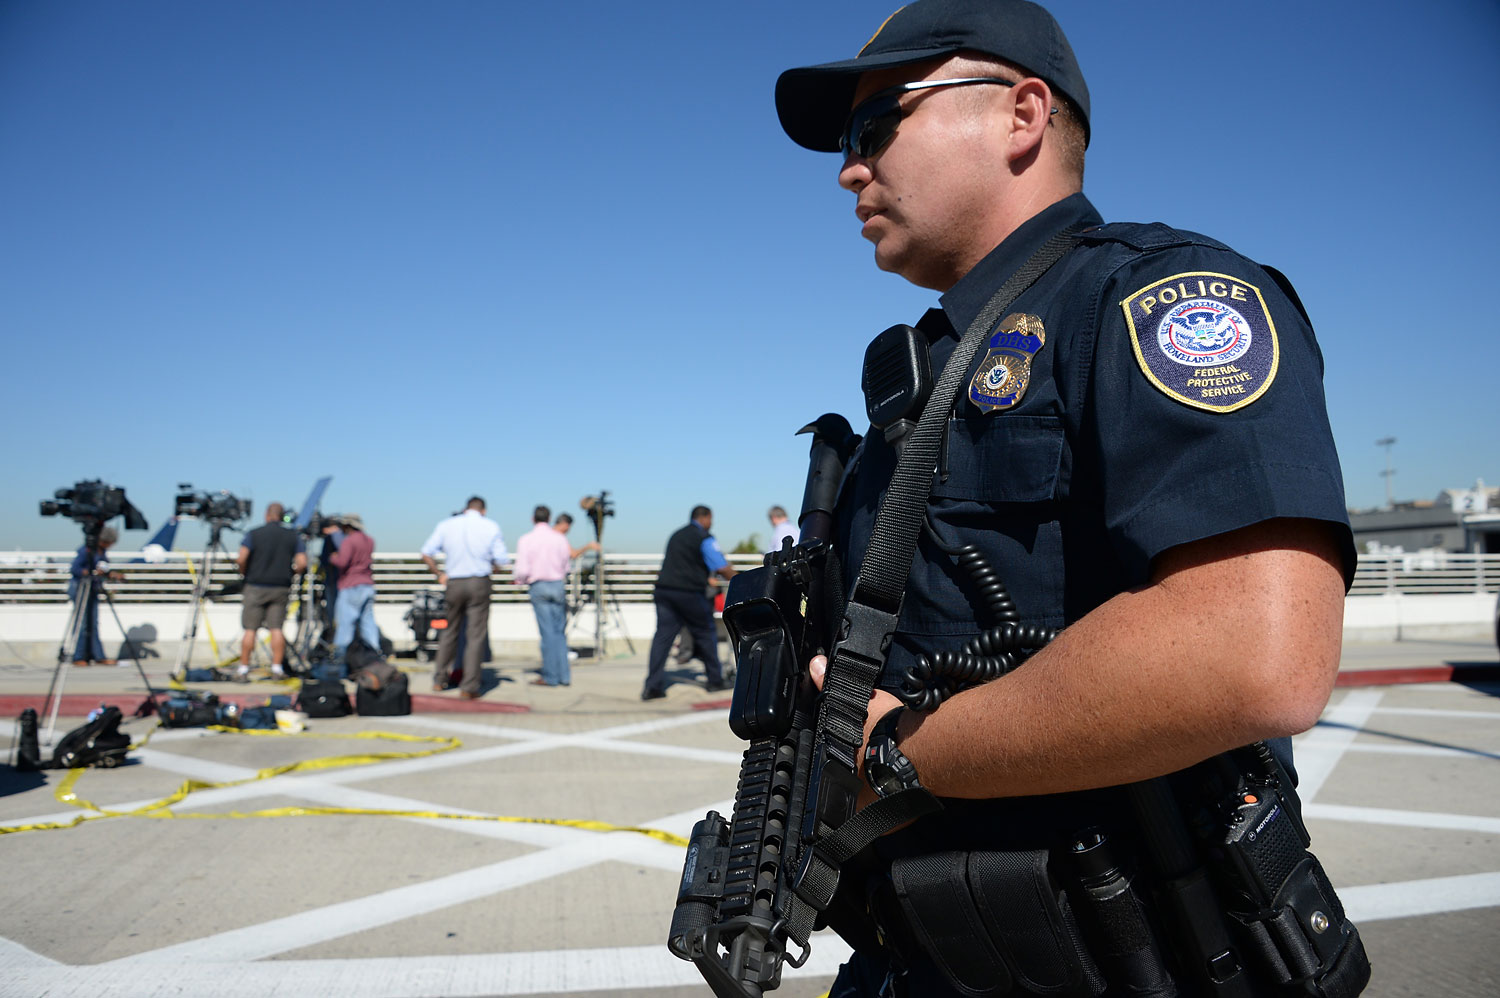 A policeman is positioned outside Terminal 3 at Los Angeles International Airport on November 1, 2013 after a gunman reportedly opened fire at a security checkpoint.